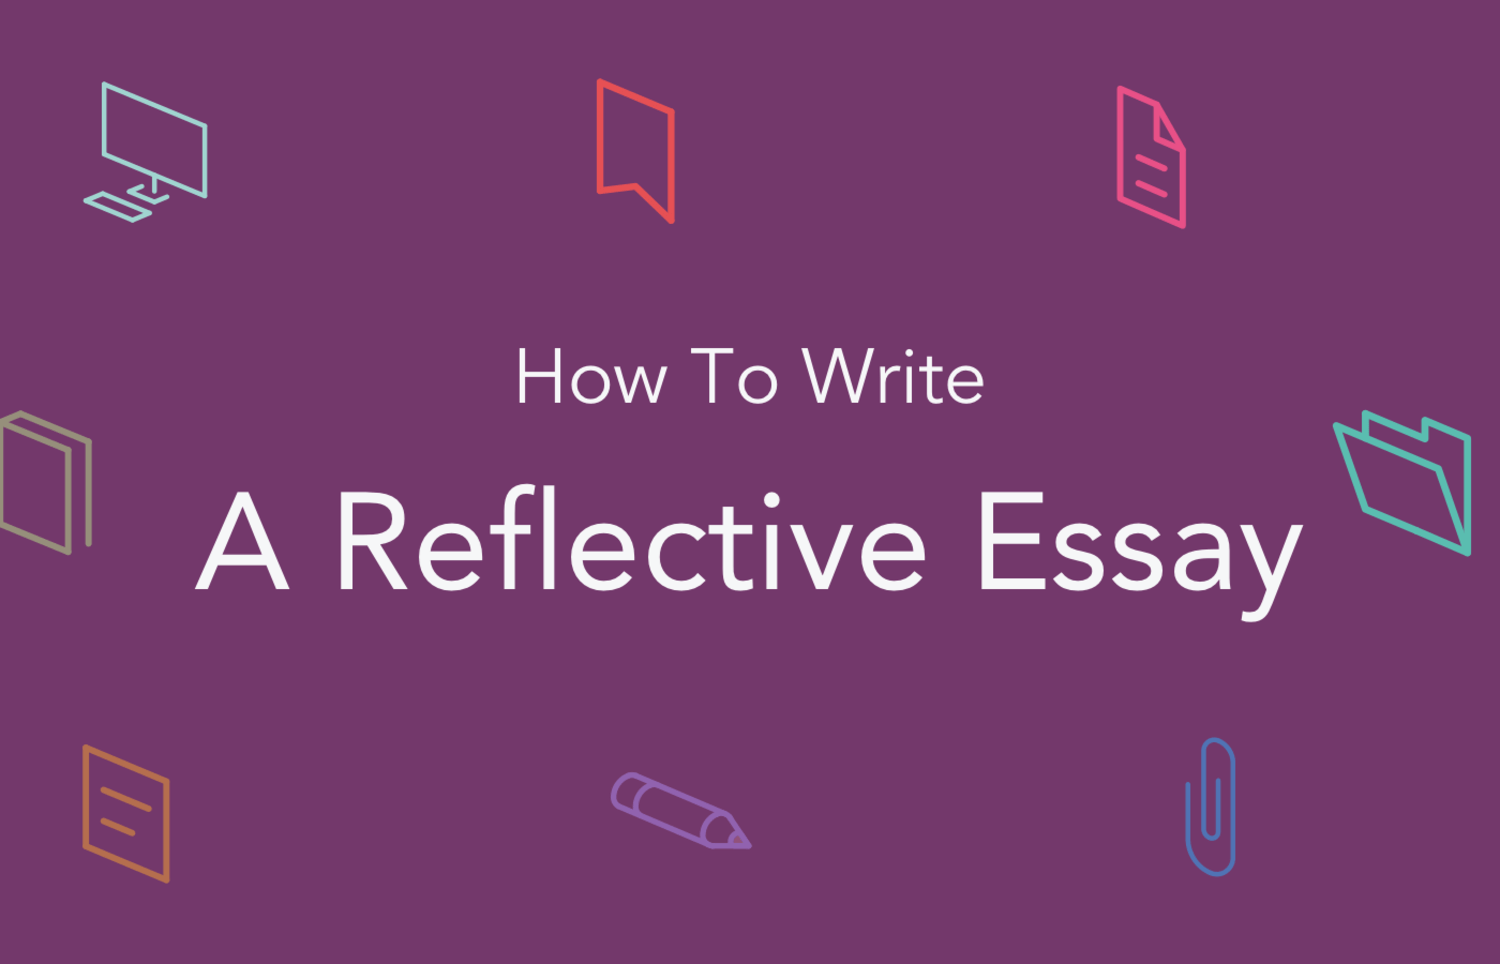 Reflective Essay: The Writing Process - Words | Bartleby